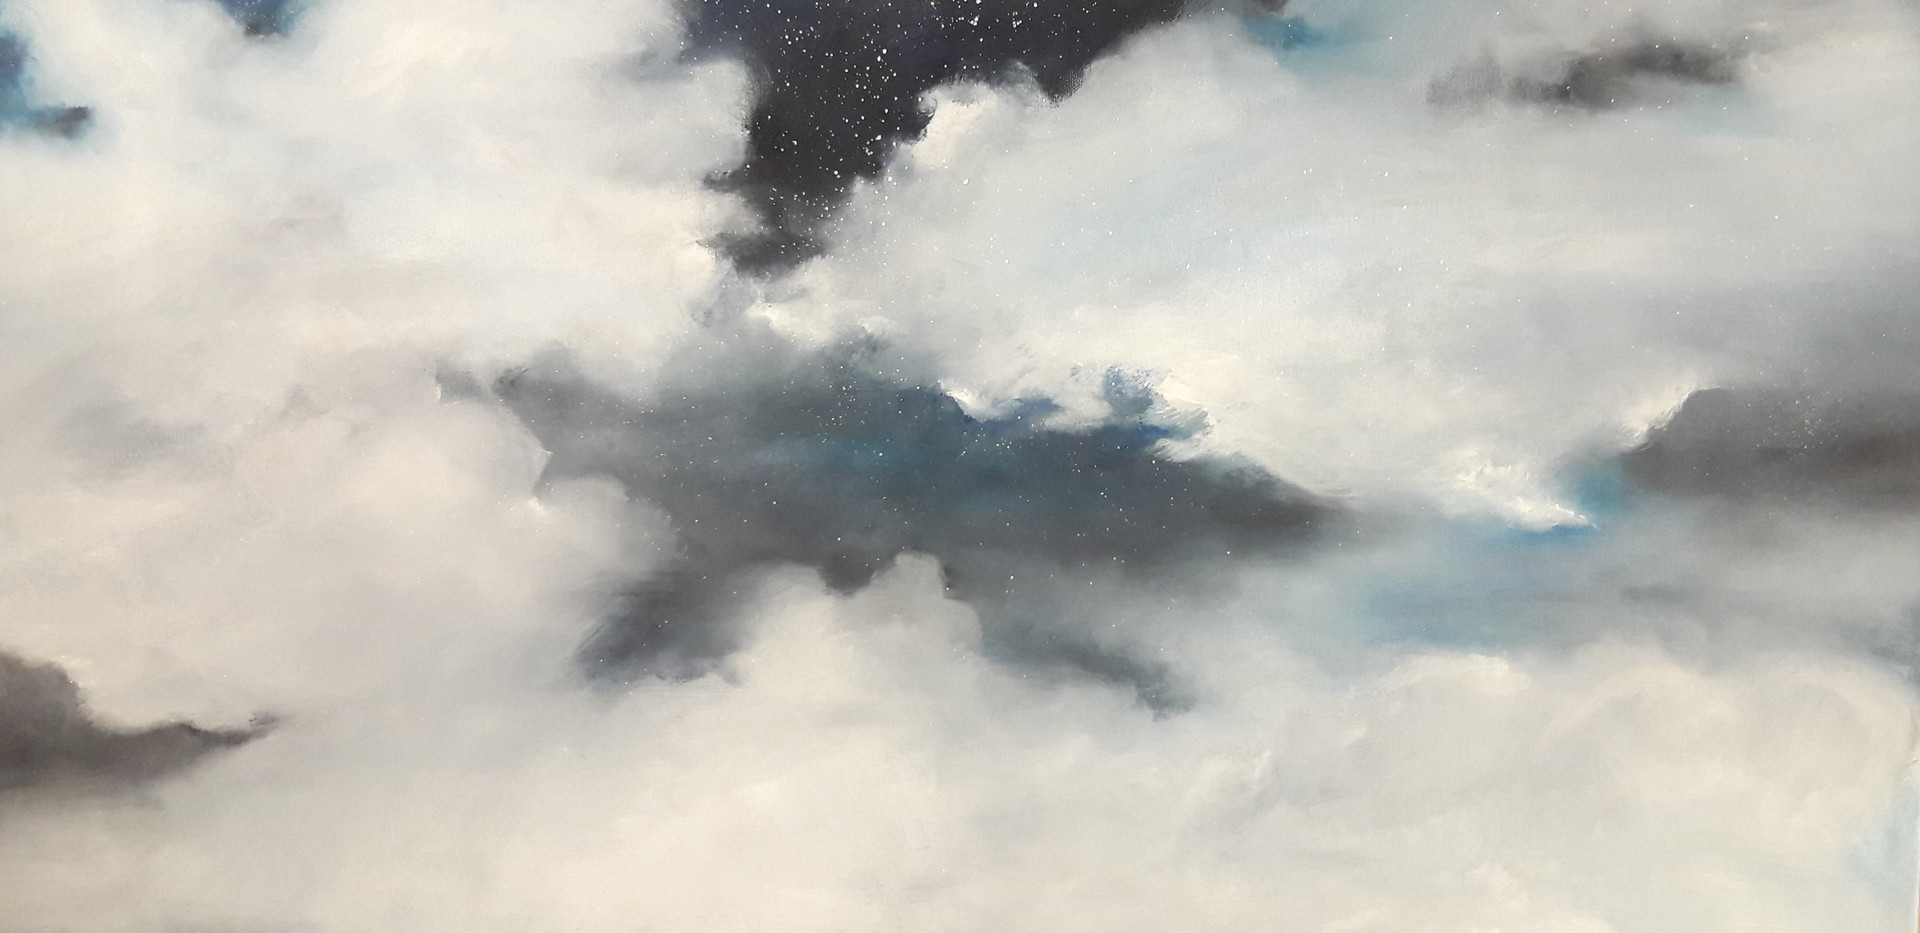 Clouds, Oil on canvas, 100x70cm, Alyazi